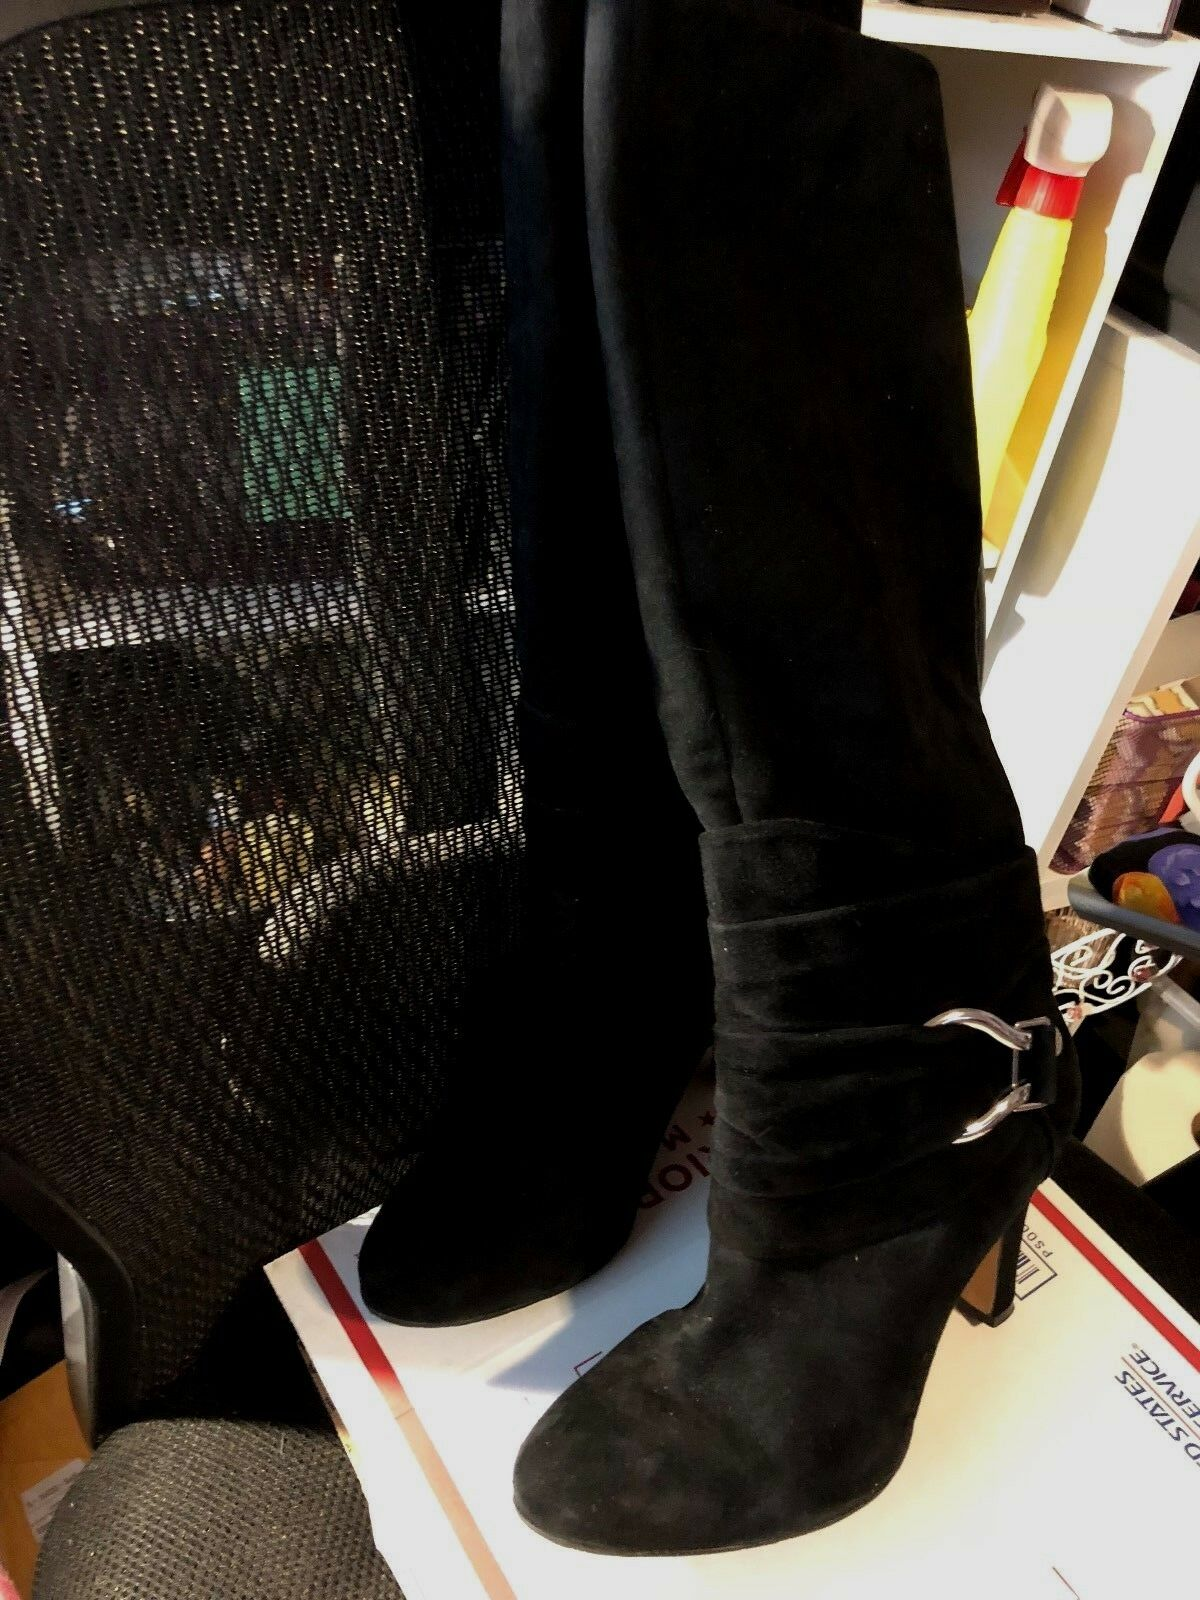 Boots, ANTONIO MELANI, black suede with silver hardware, hardware, hardware, 4  heel, SZ  8 1 2M 063c2d